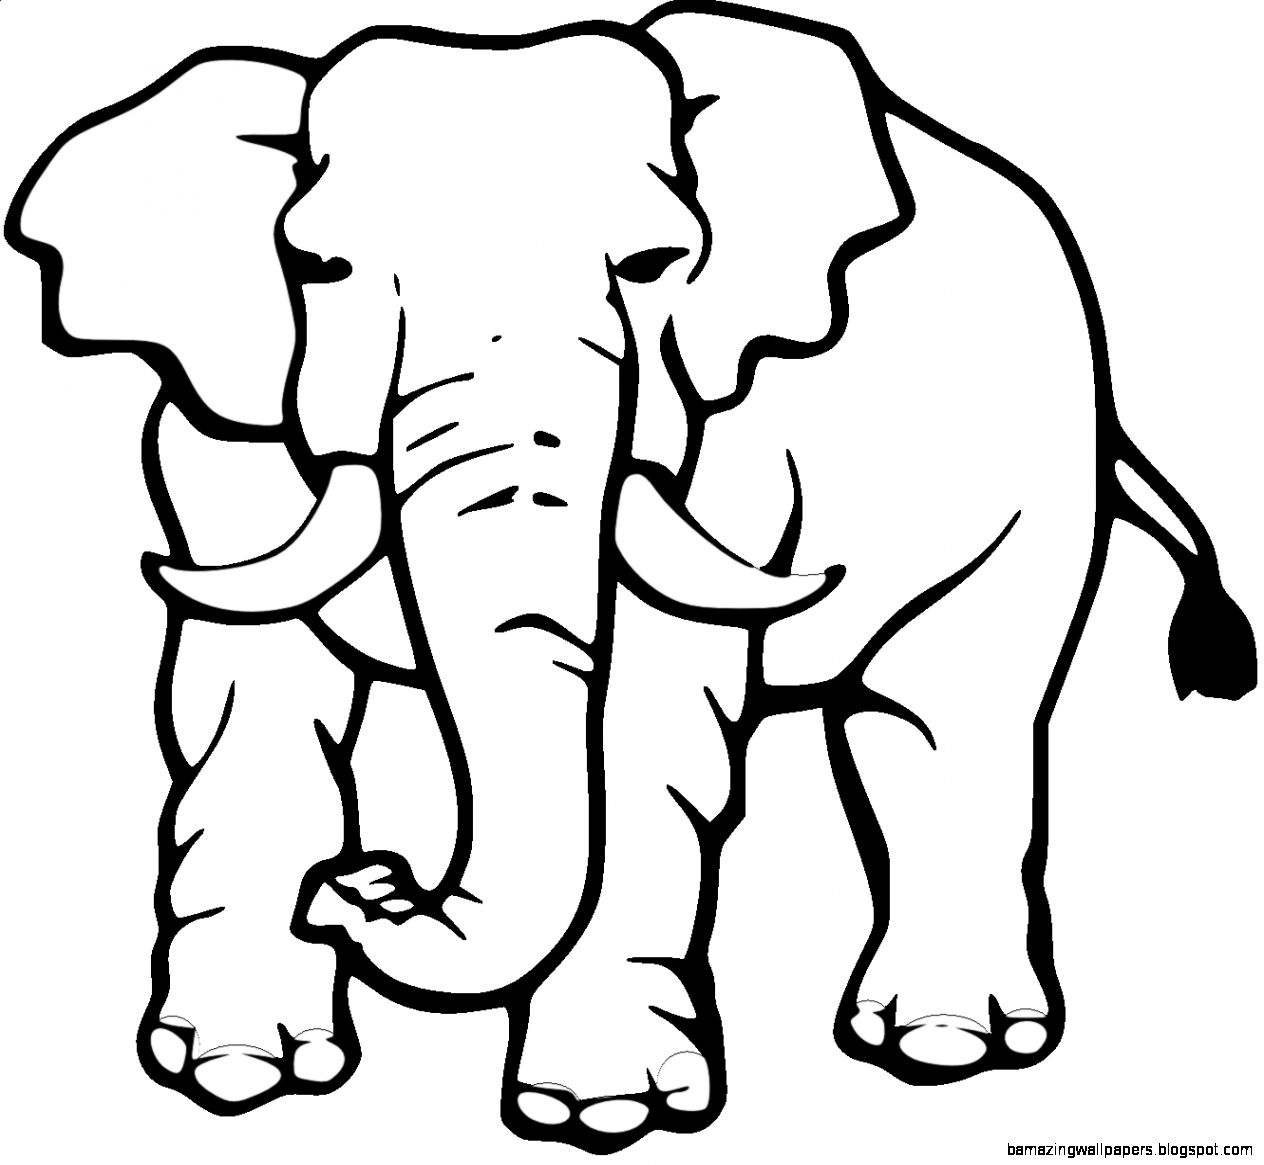 Clipart elephant plain. Of in black and